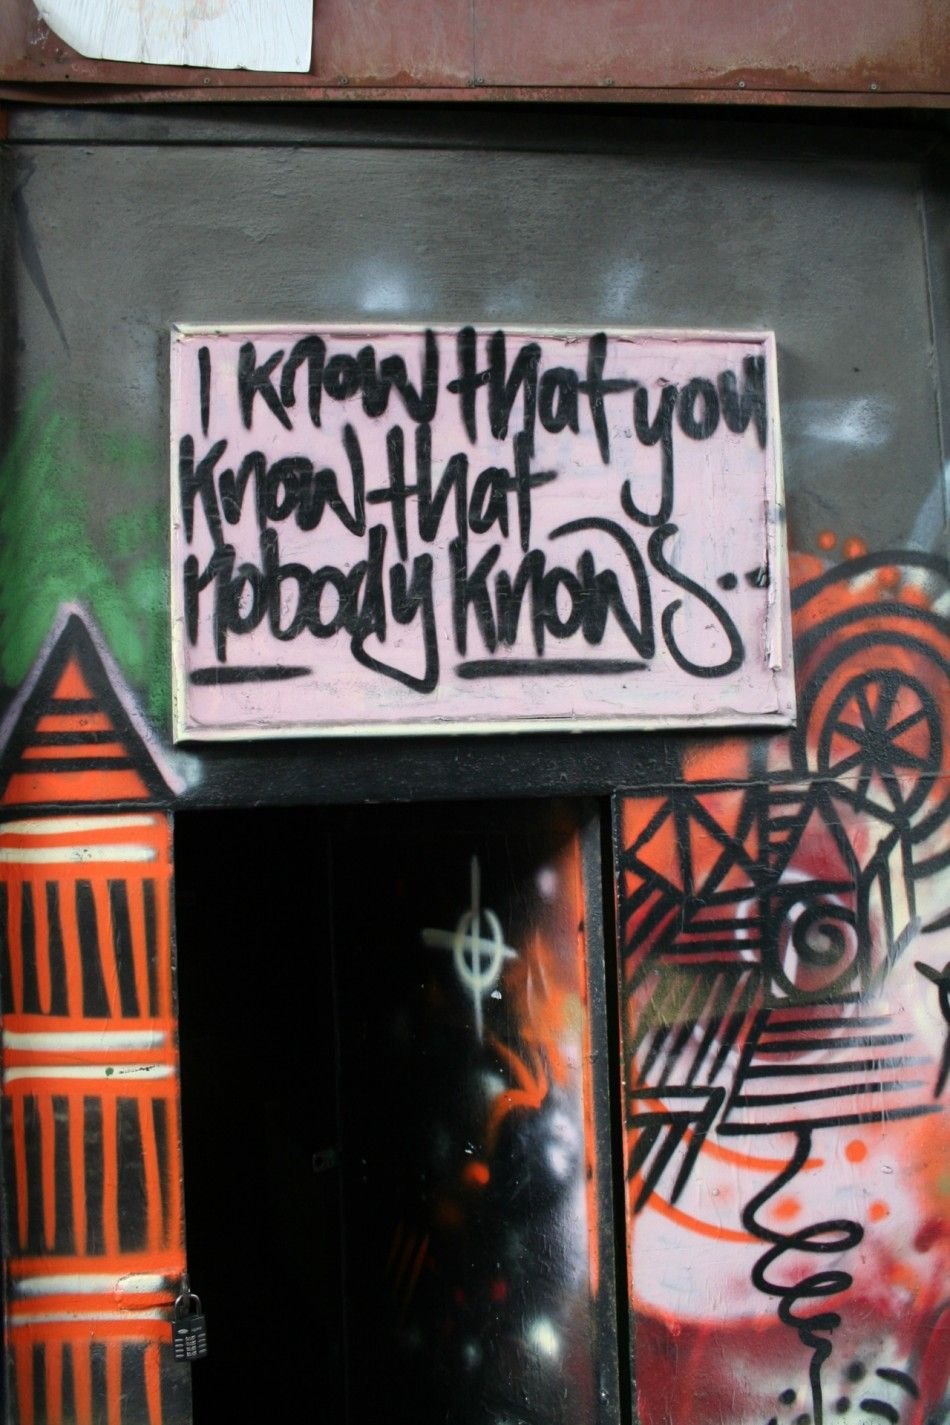 i know that you know that nobody knows, graffiti, GetSome